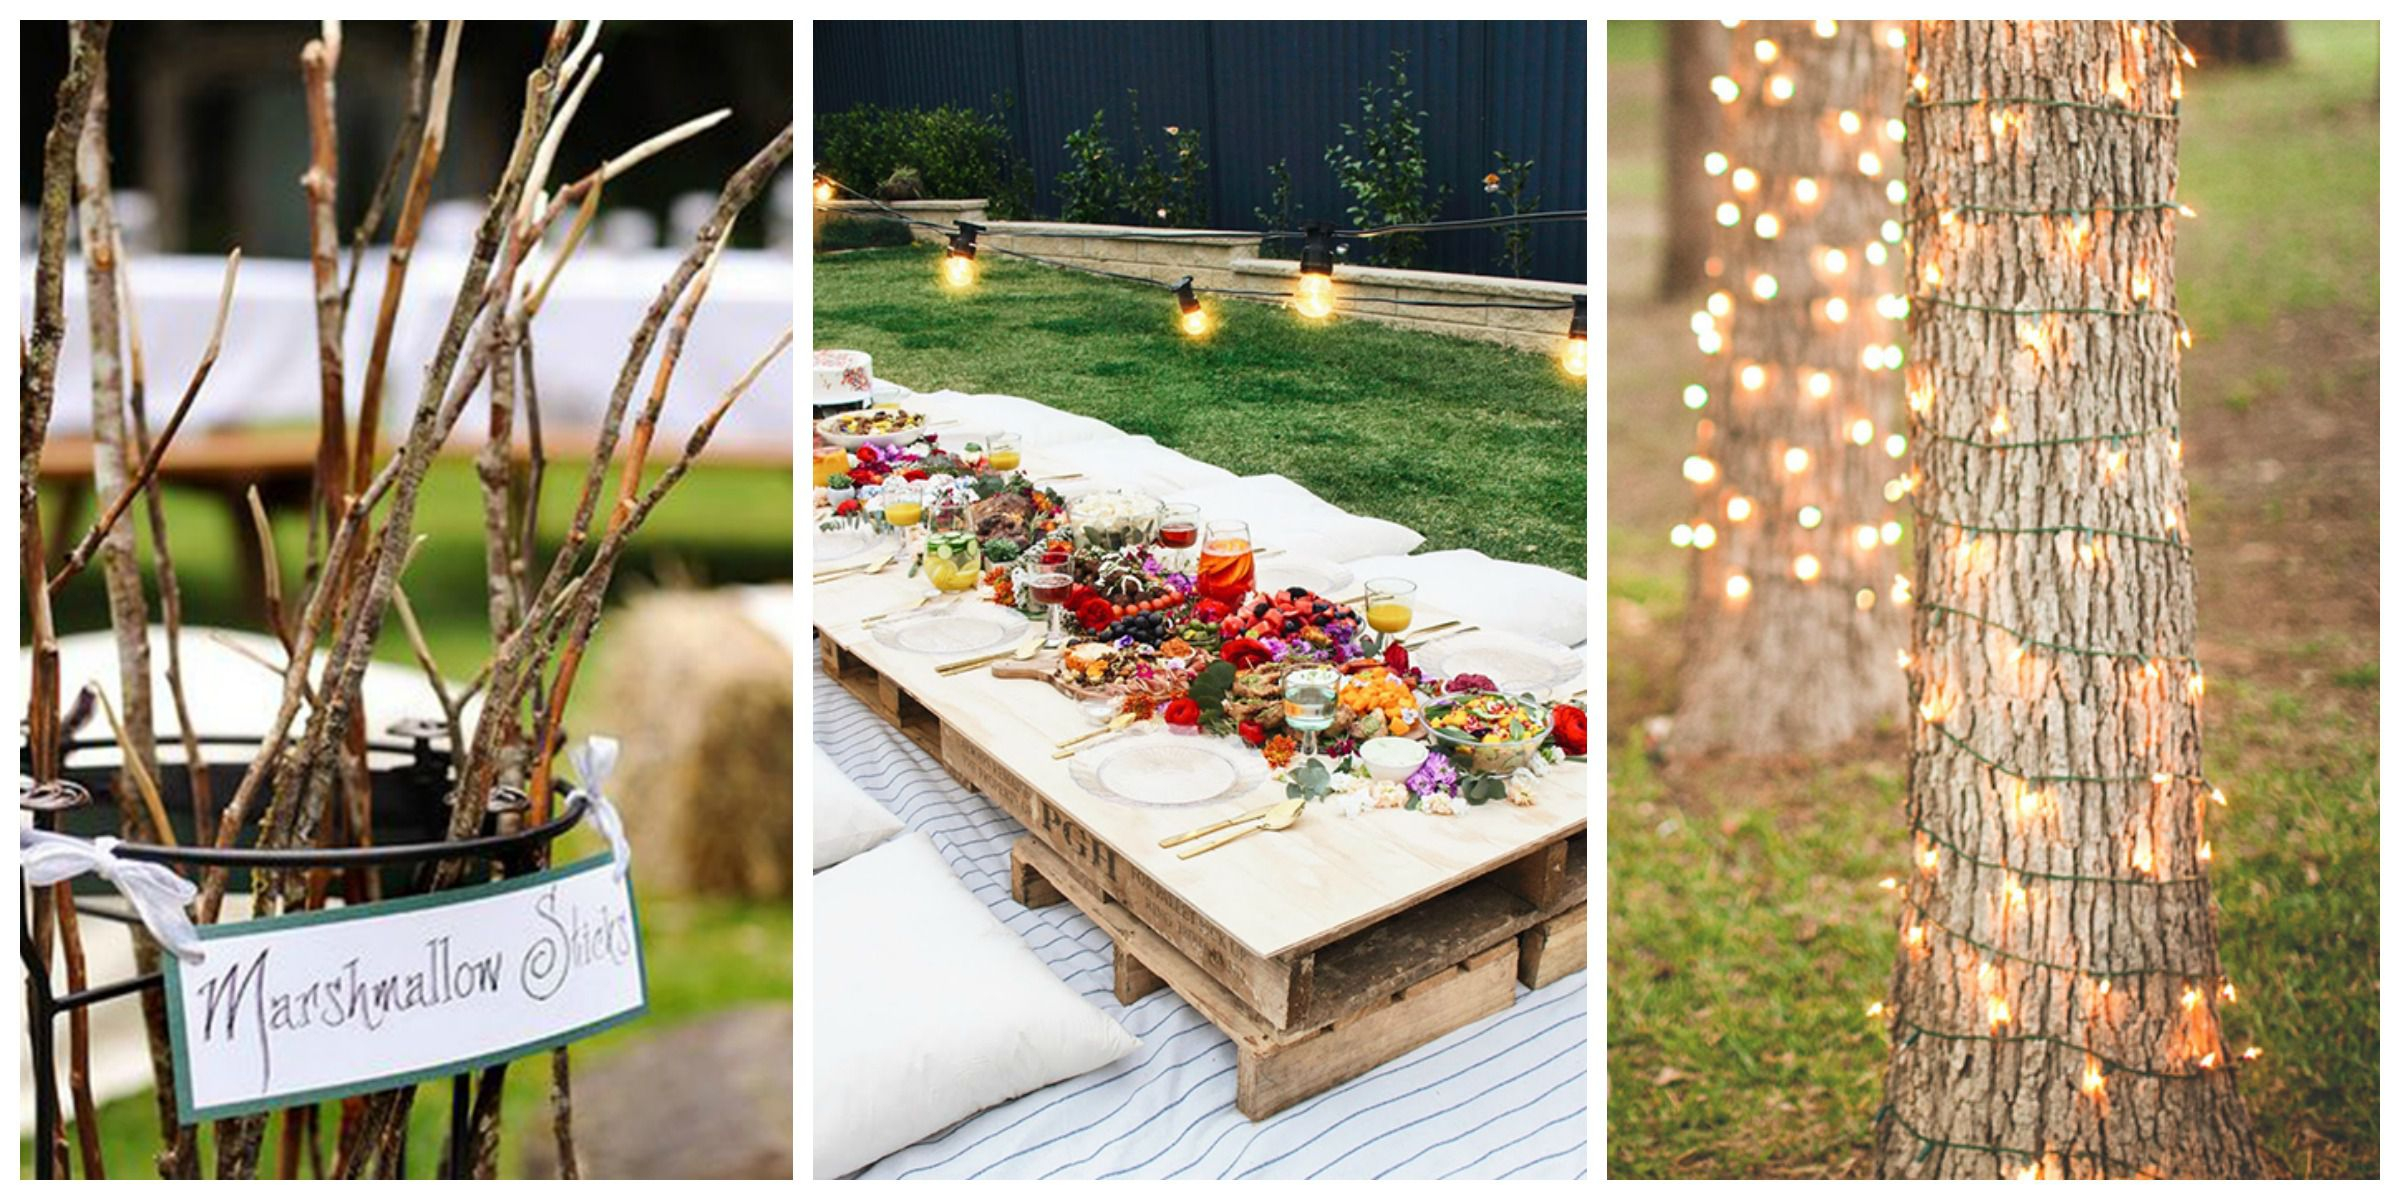 14 Best Backyard Party Ideas For Adults Summer Entertaining Decor throughout 14 Genius Designs of How to Upgrade Backyard Birthday Party Ideas